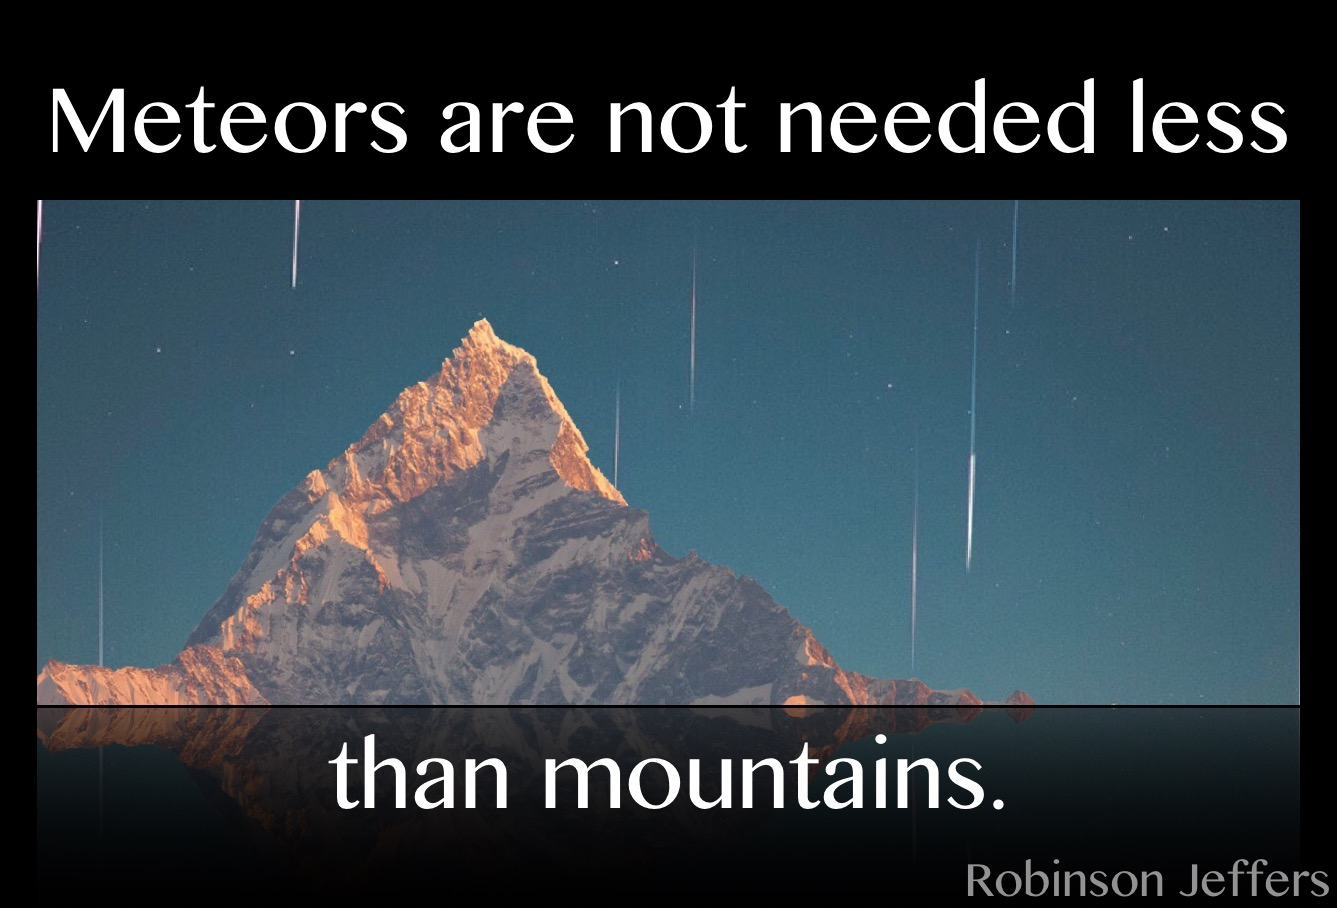 Robinson Jeffers quote